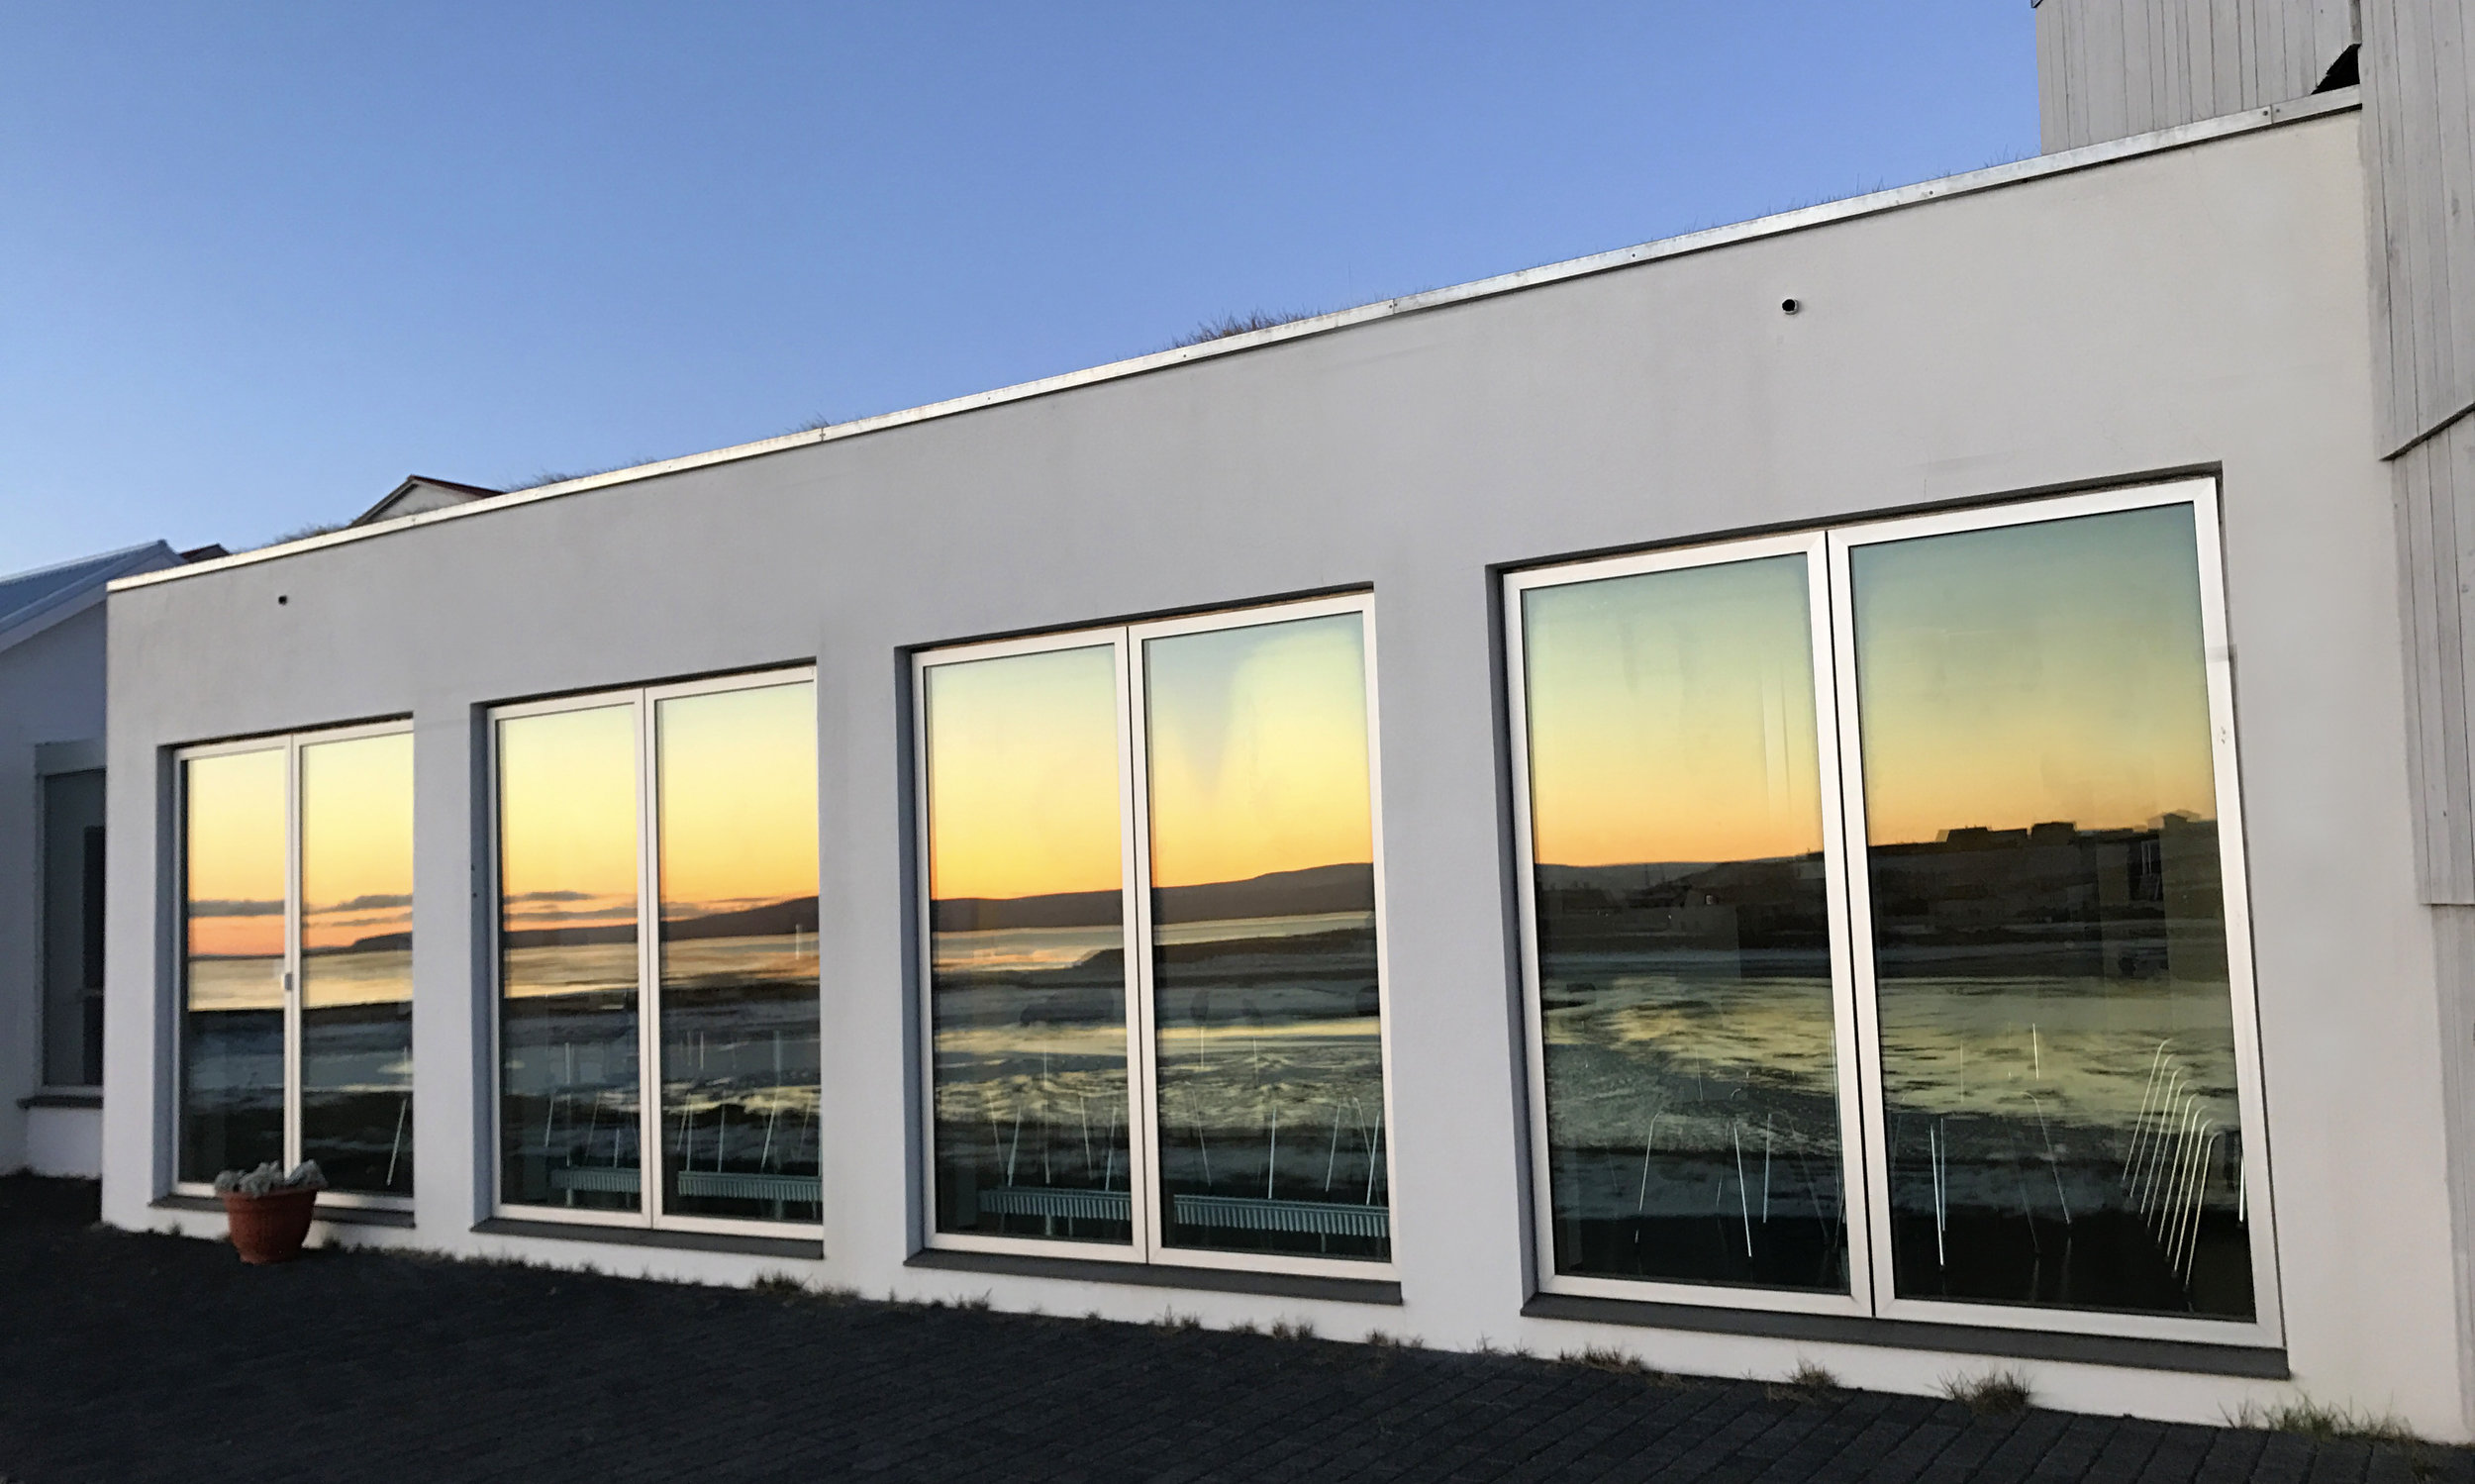 Sun reflecting off the windows at the Textile Museum at sunset -Blönduós, Iceland.